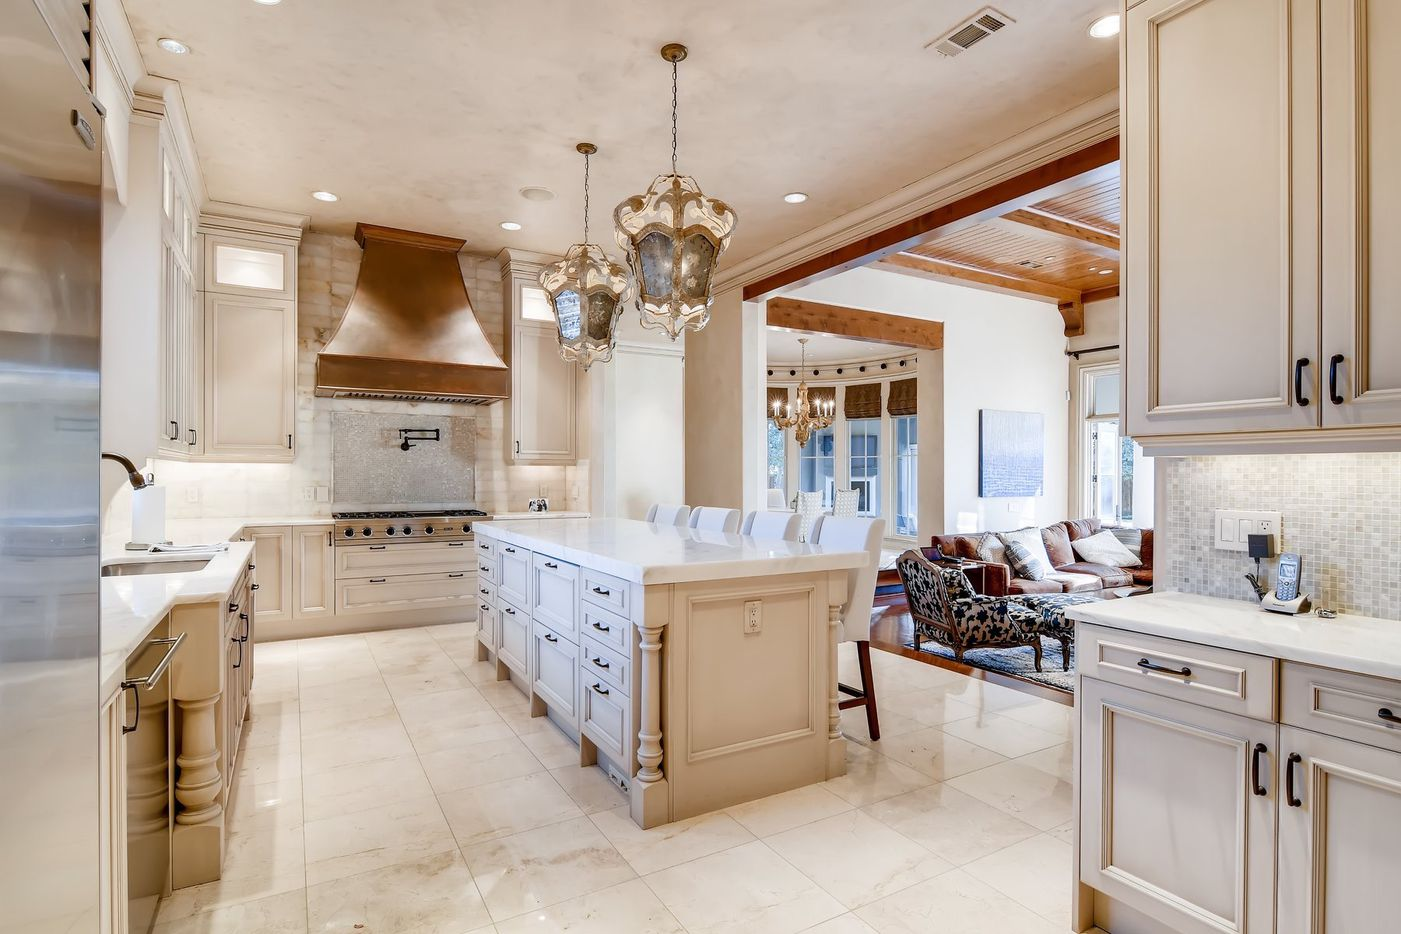 A look at the property at 4346 Park Lane in Dallas.